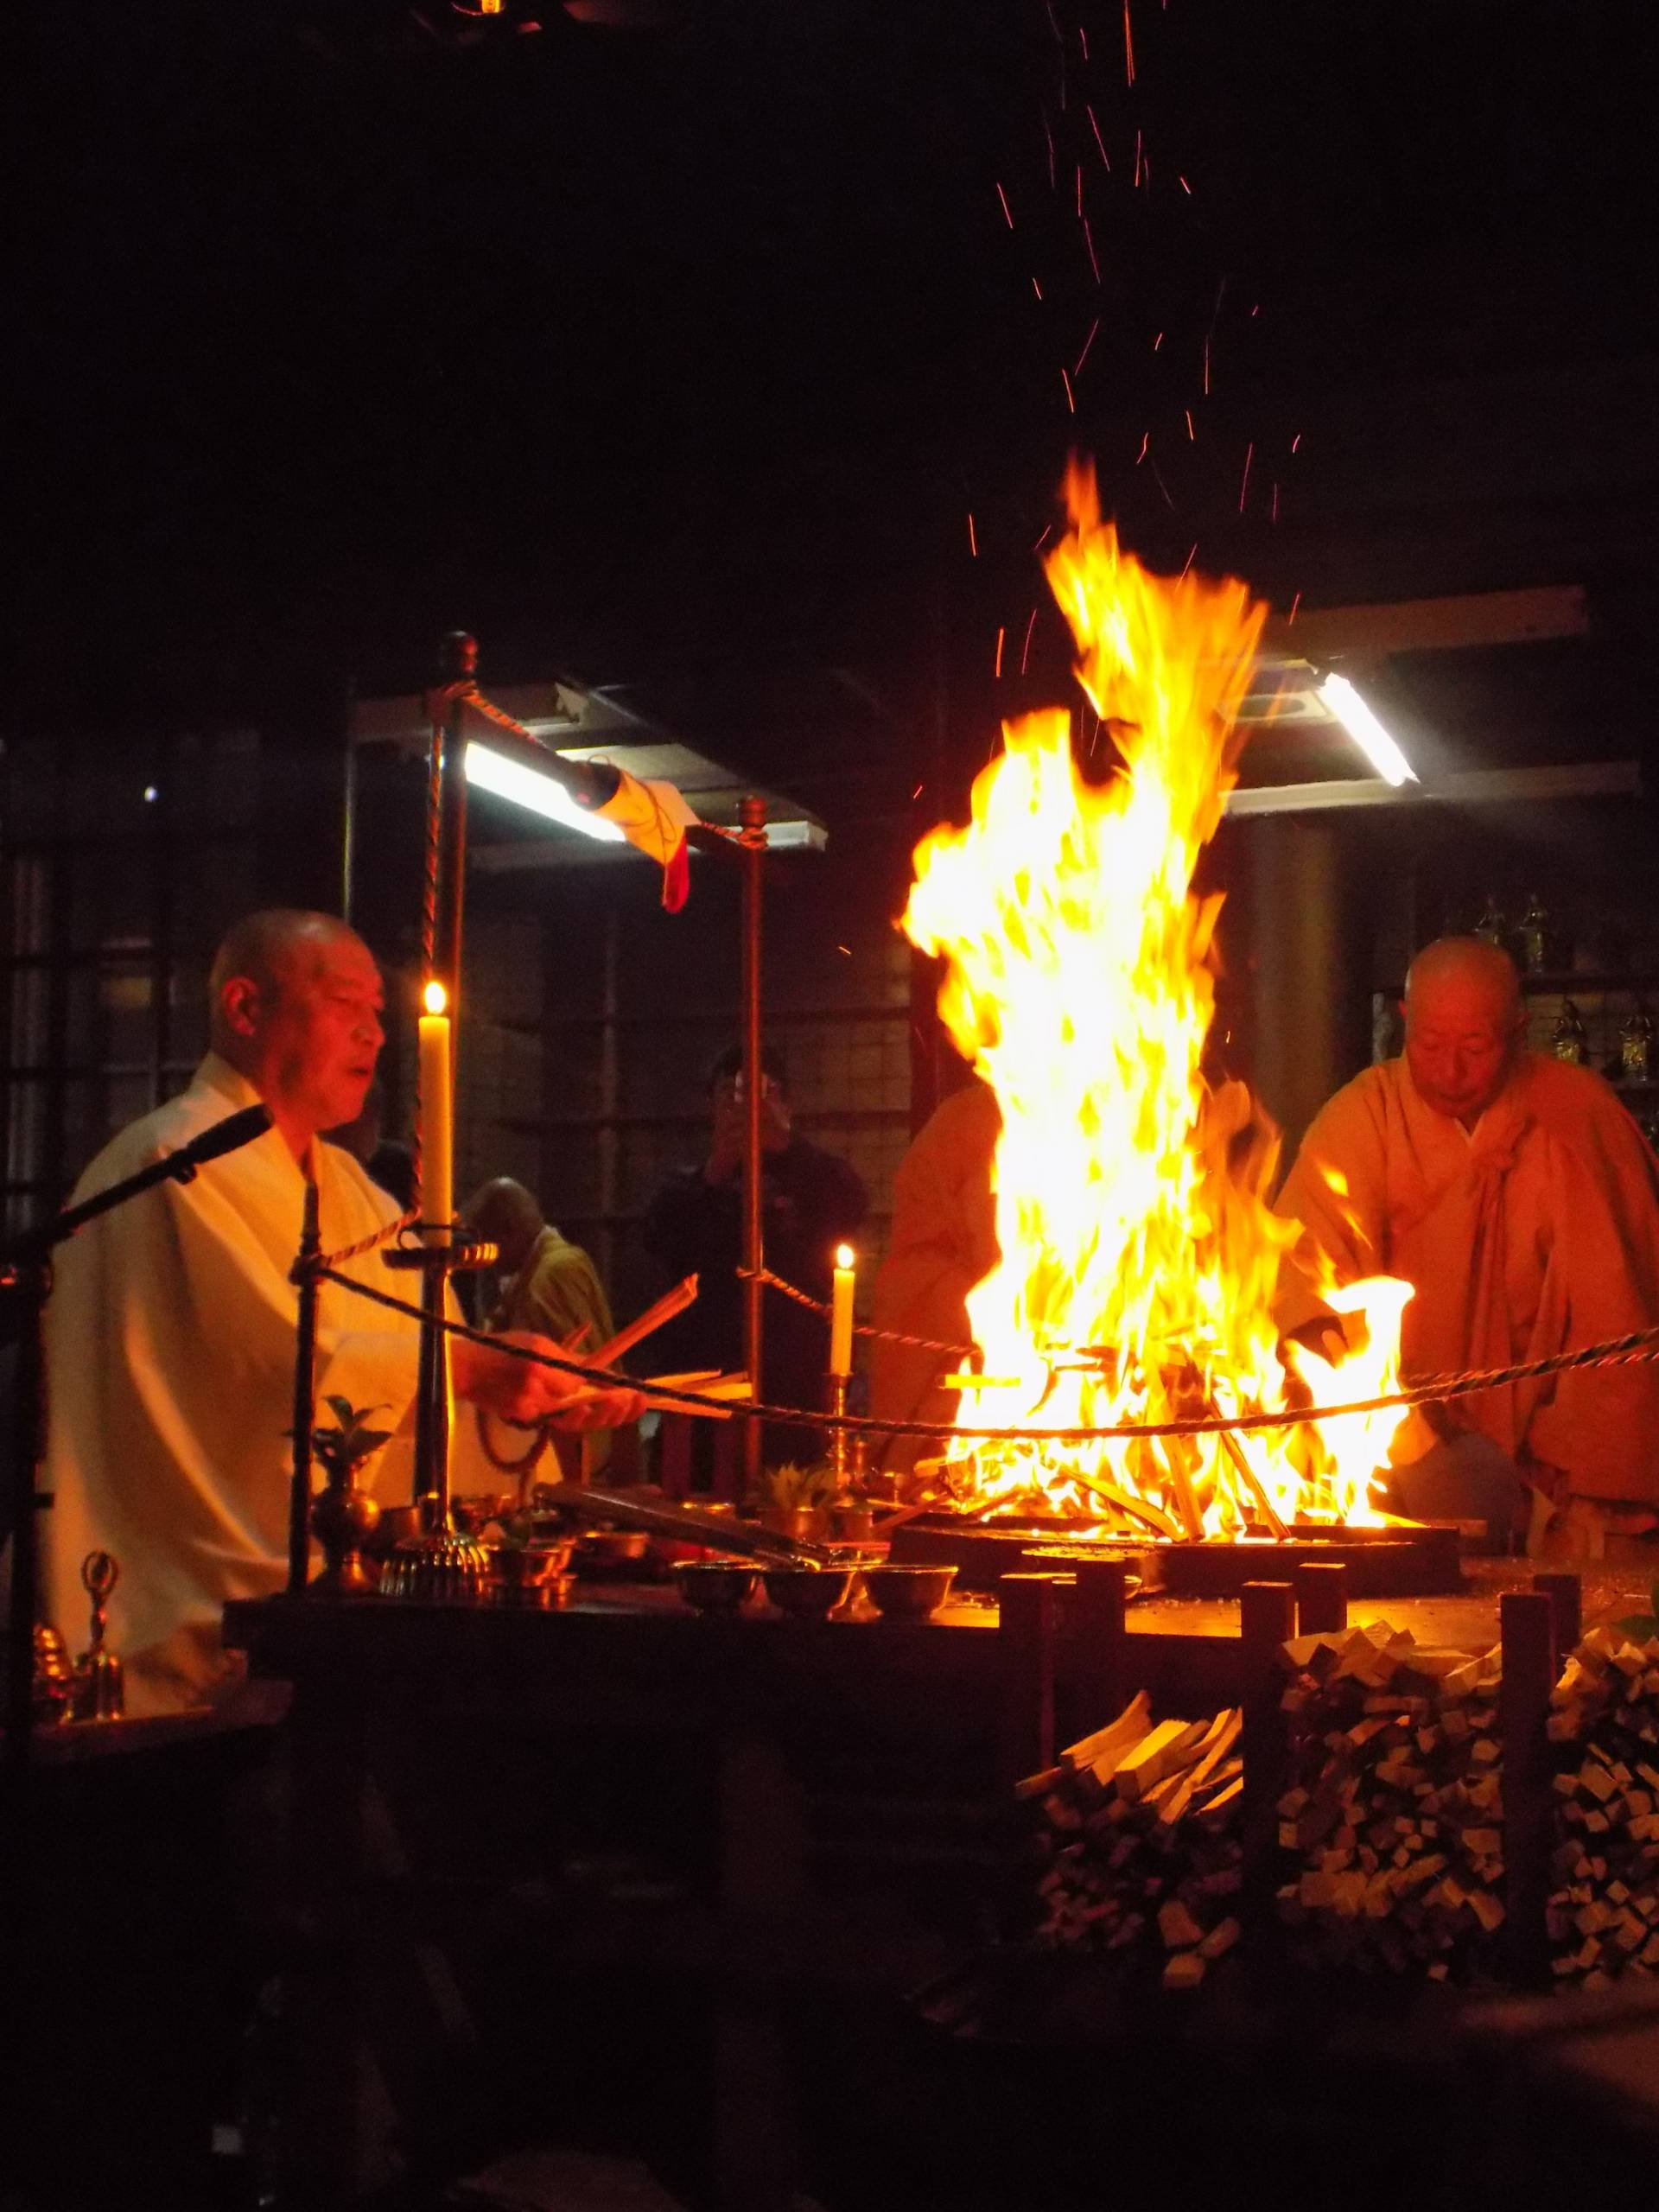 Every month on the second Sunday and on the 28th, you can view a Goma Buddhist memorial service.